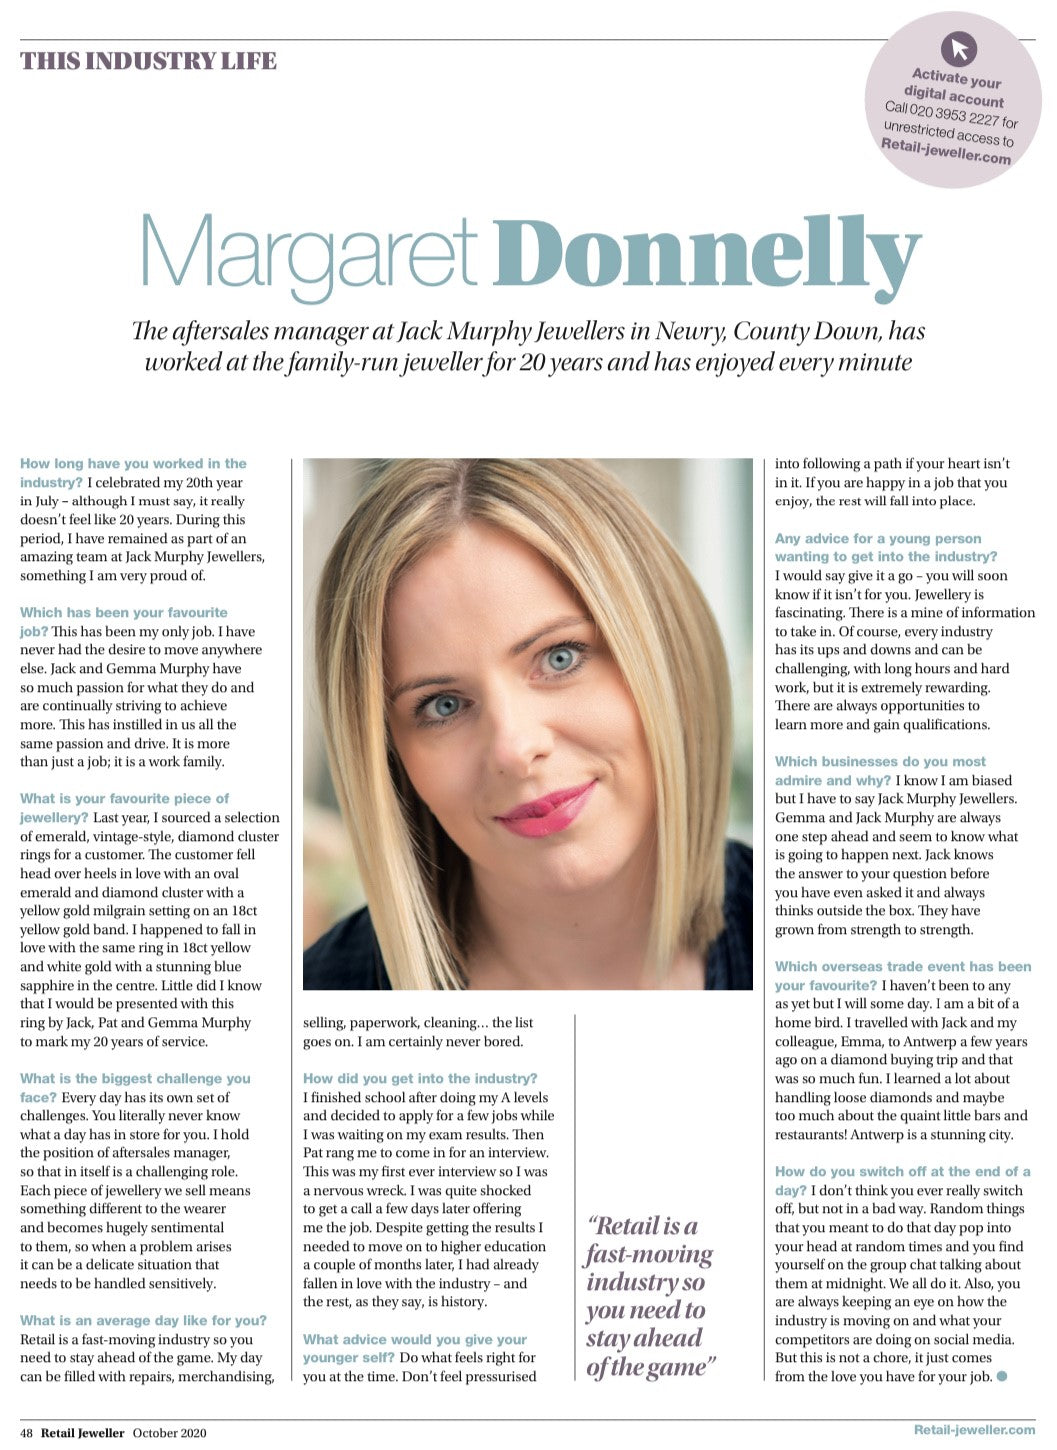 Celebrating 20 Years: Aftersales Manager, Margaret Donnelly Chats to Retail Jeweller Magazine